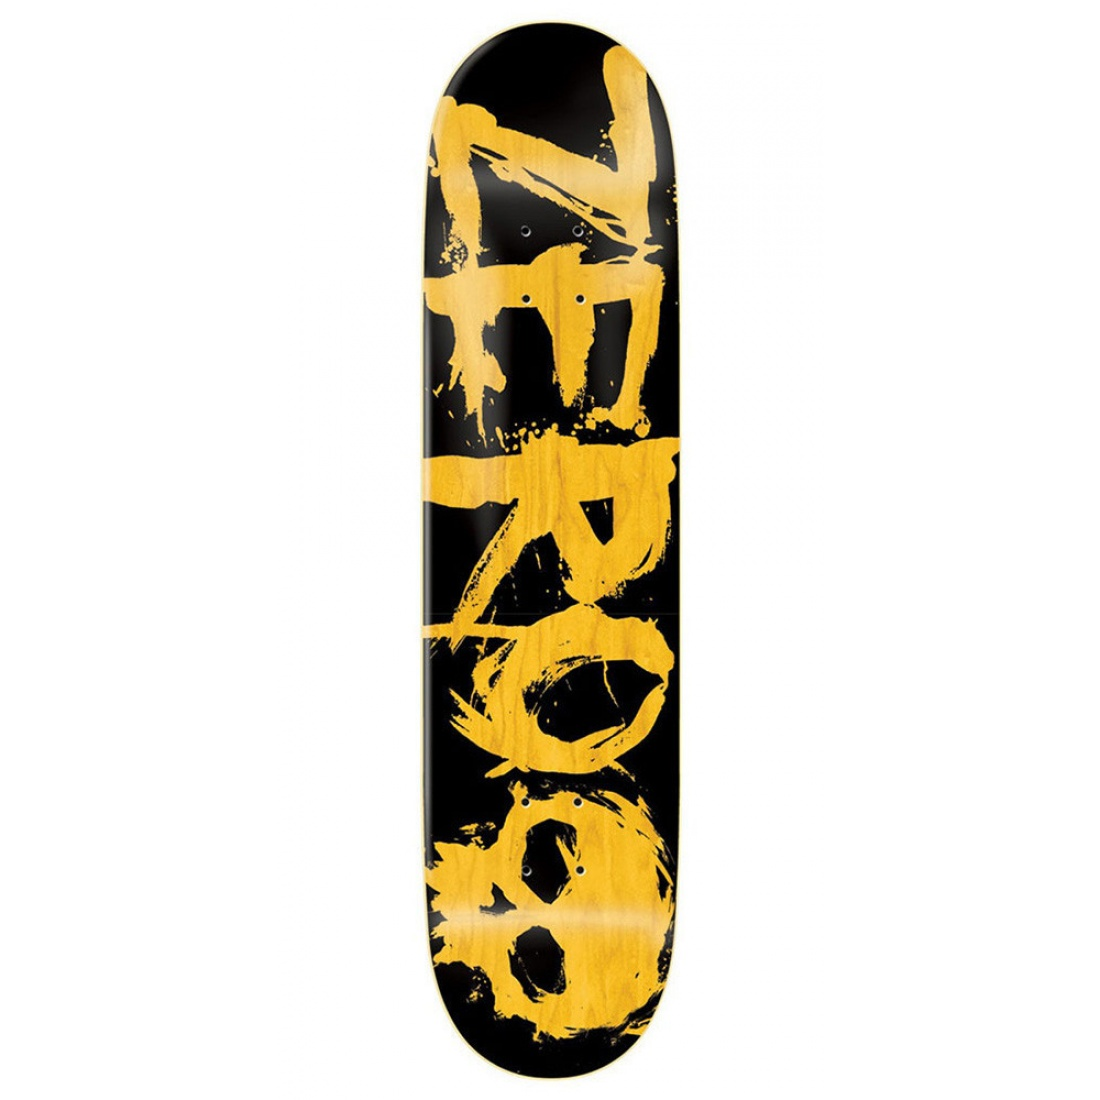 ZER-Blood K/O SL Assorted 8.125 Deck